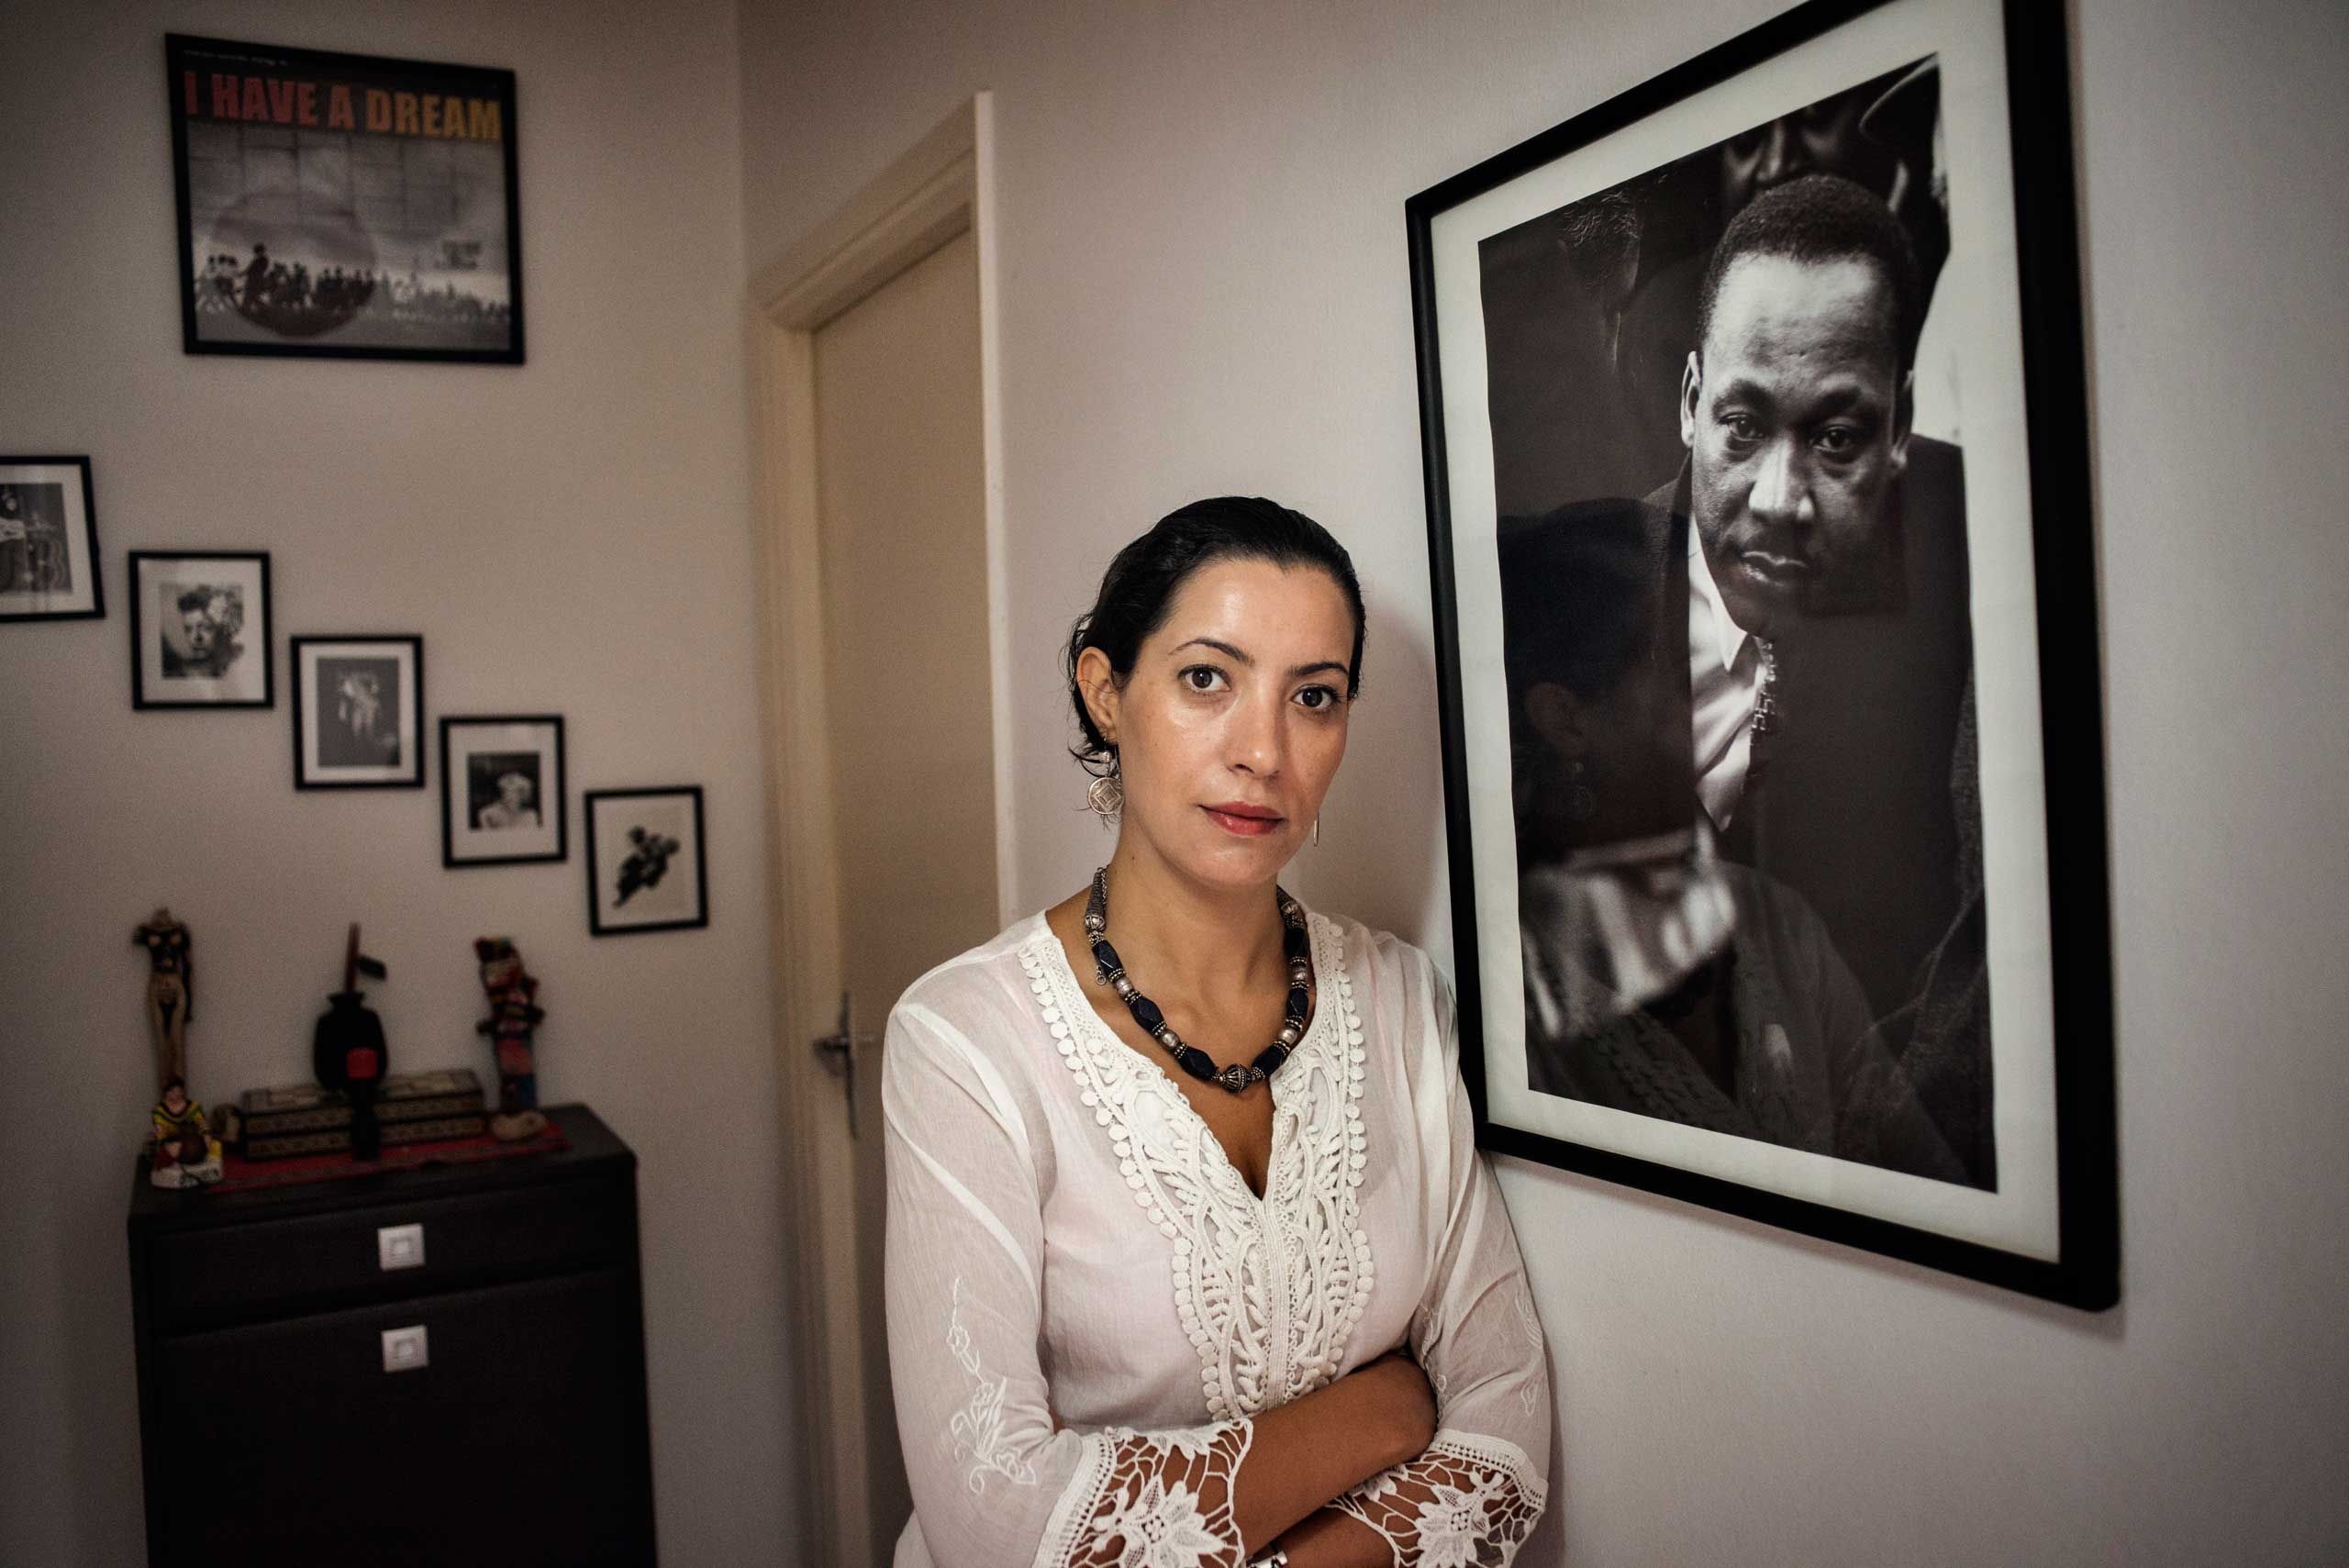 Tunisian woman's right's activist Ikram Ben Said at her home in Tunis, Tunisia on Aug. 18, 2014.